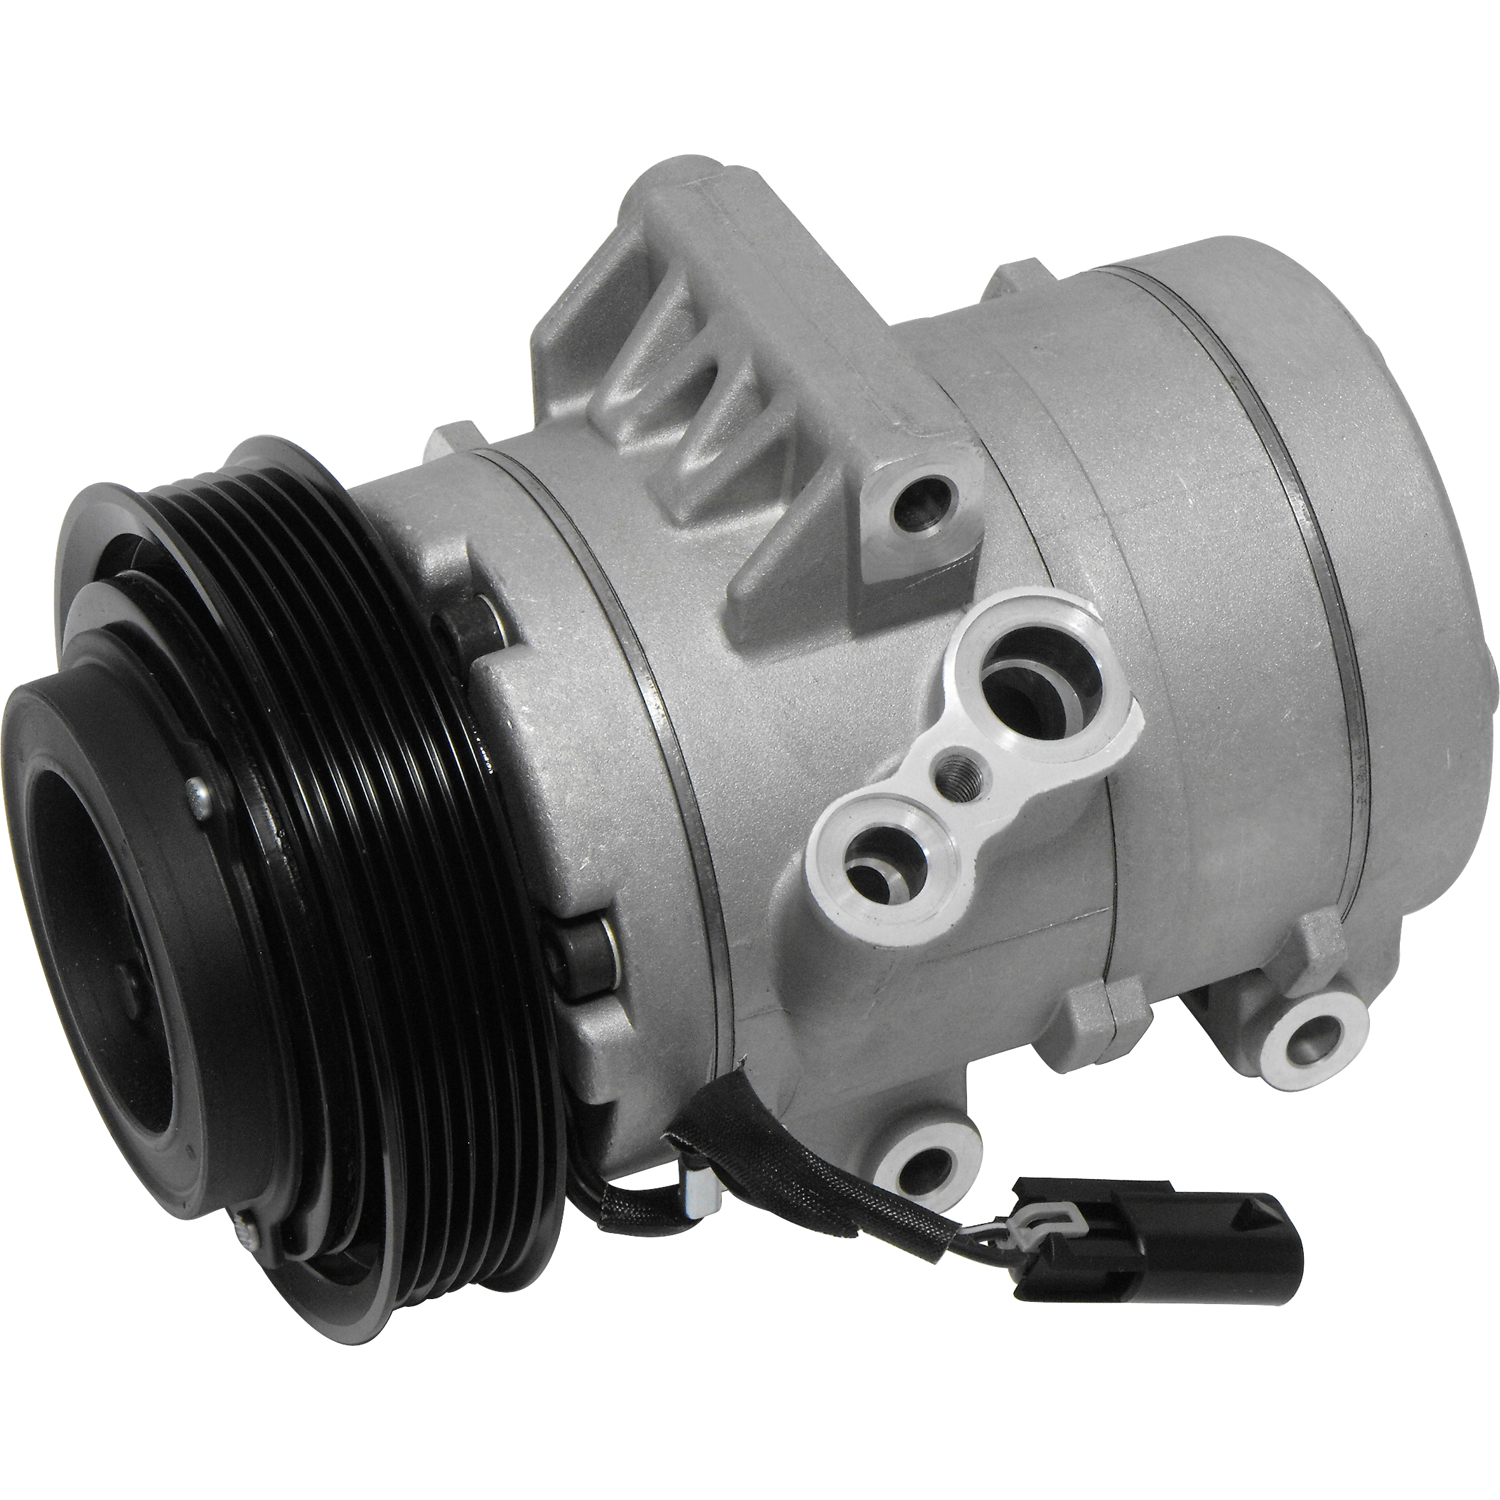 CO 11209C SP17 Compressor Assembly